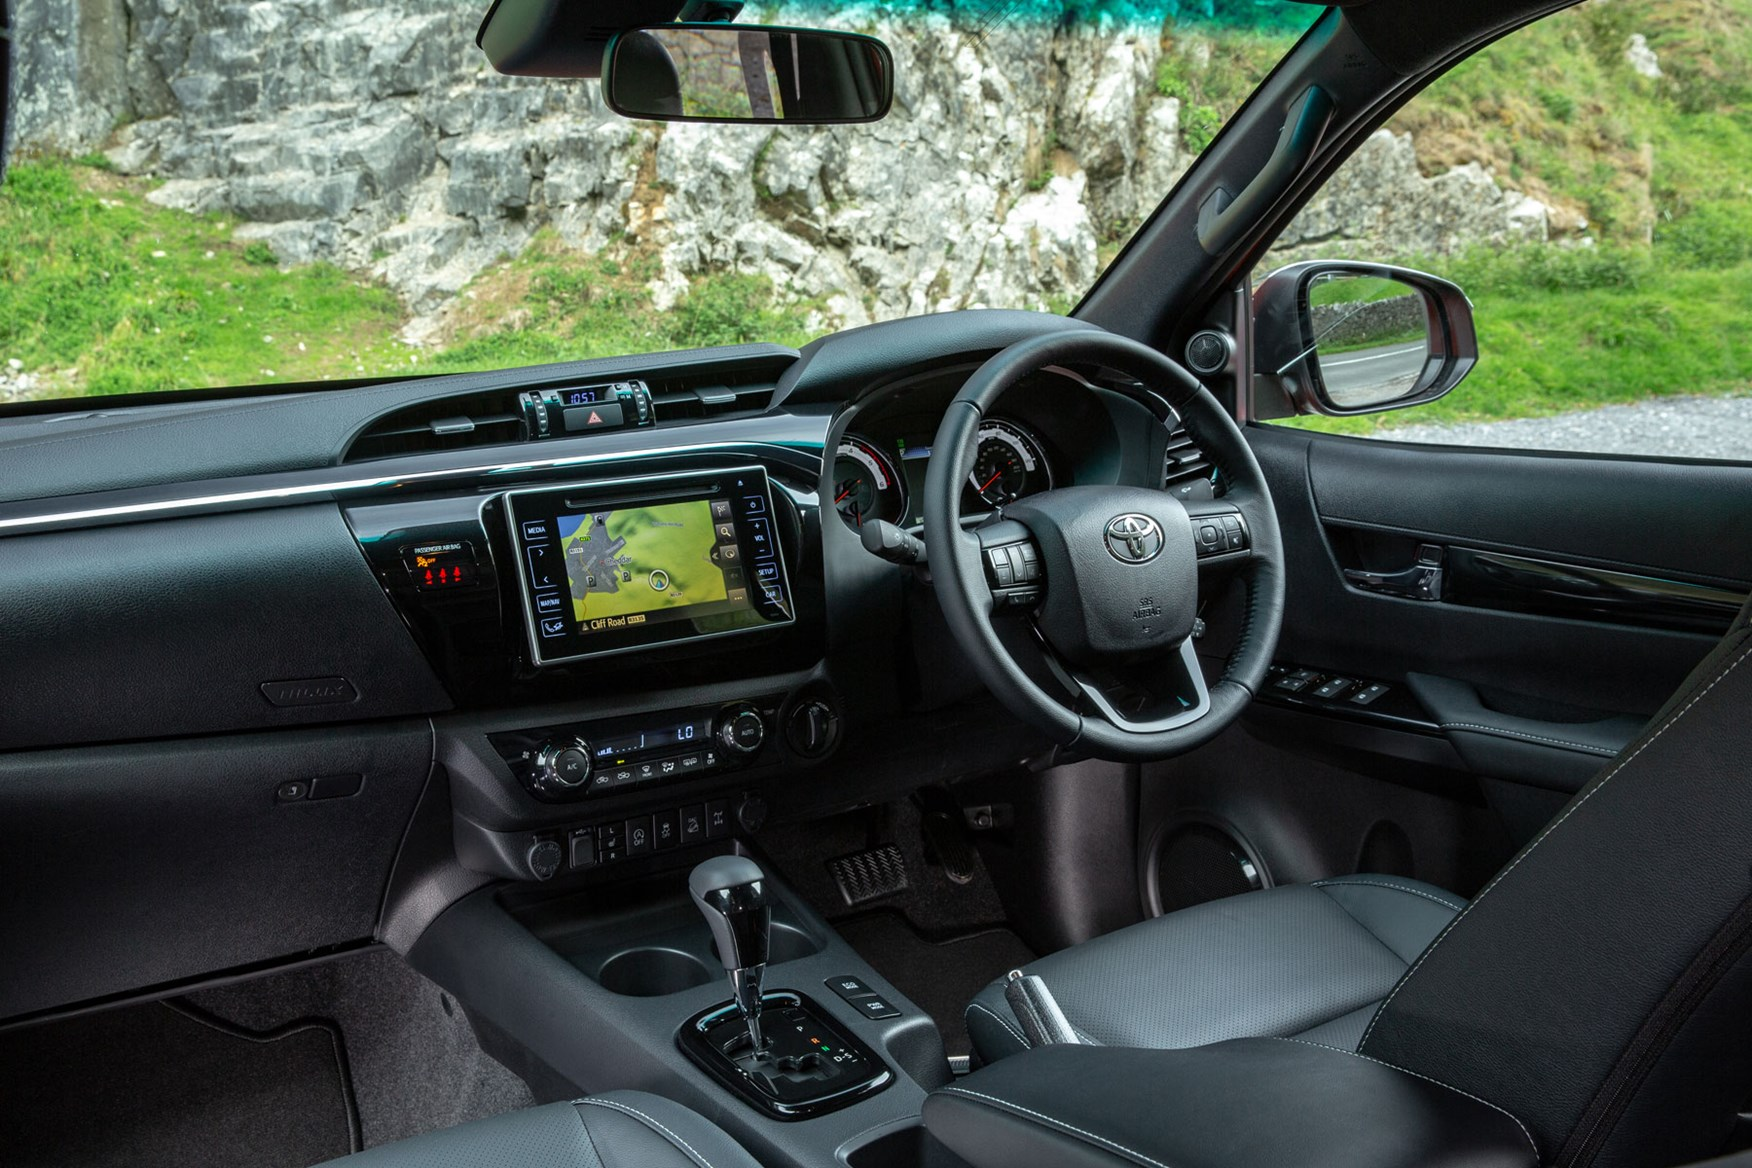 Toyota Hilux review - cab interior, dashboard, infotainment